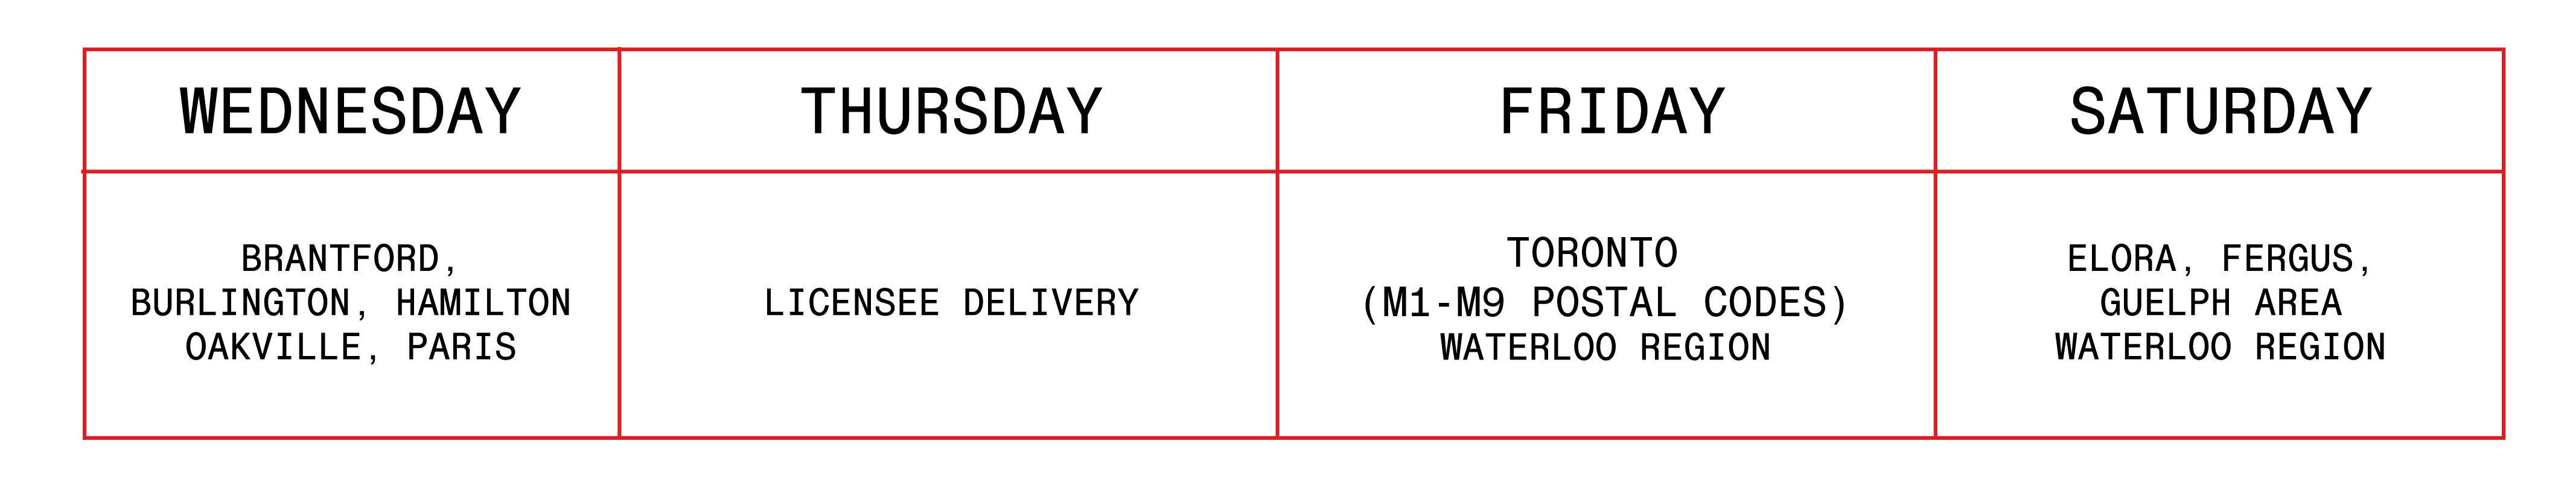 Willbald Delivery Schedule